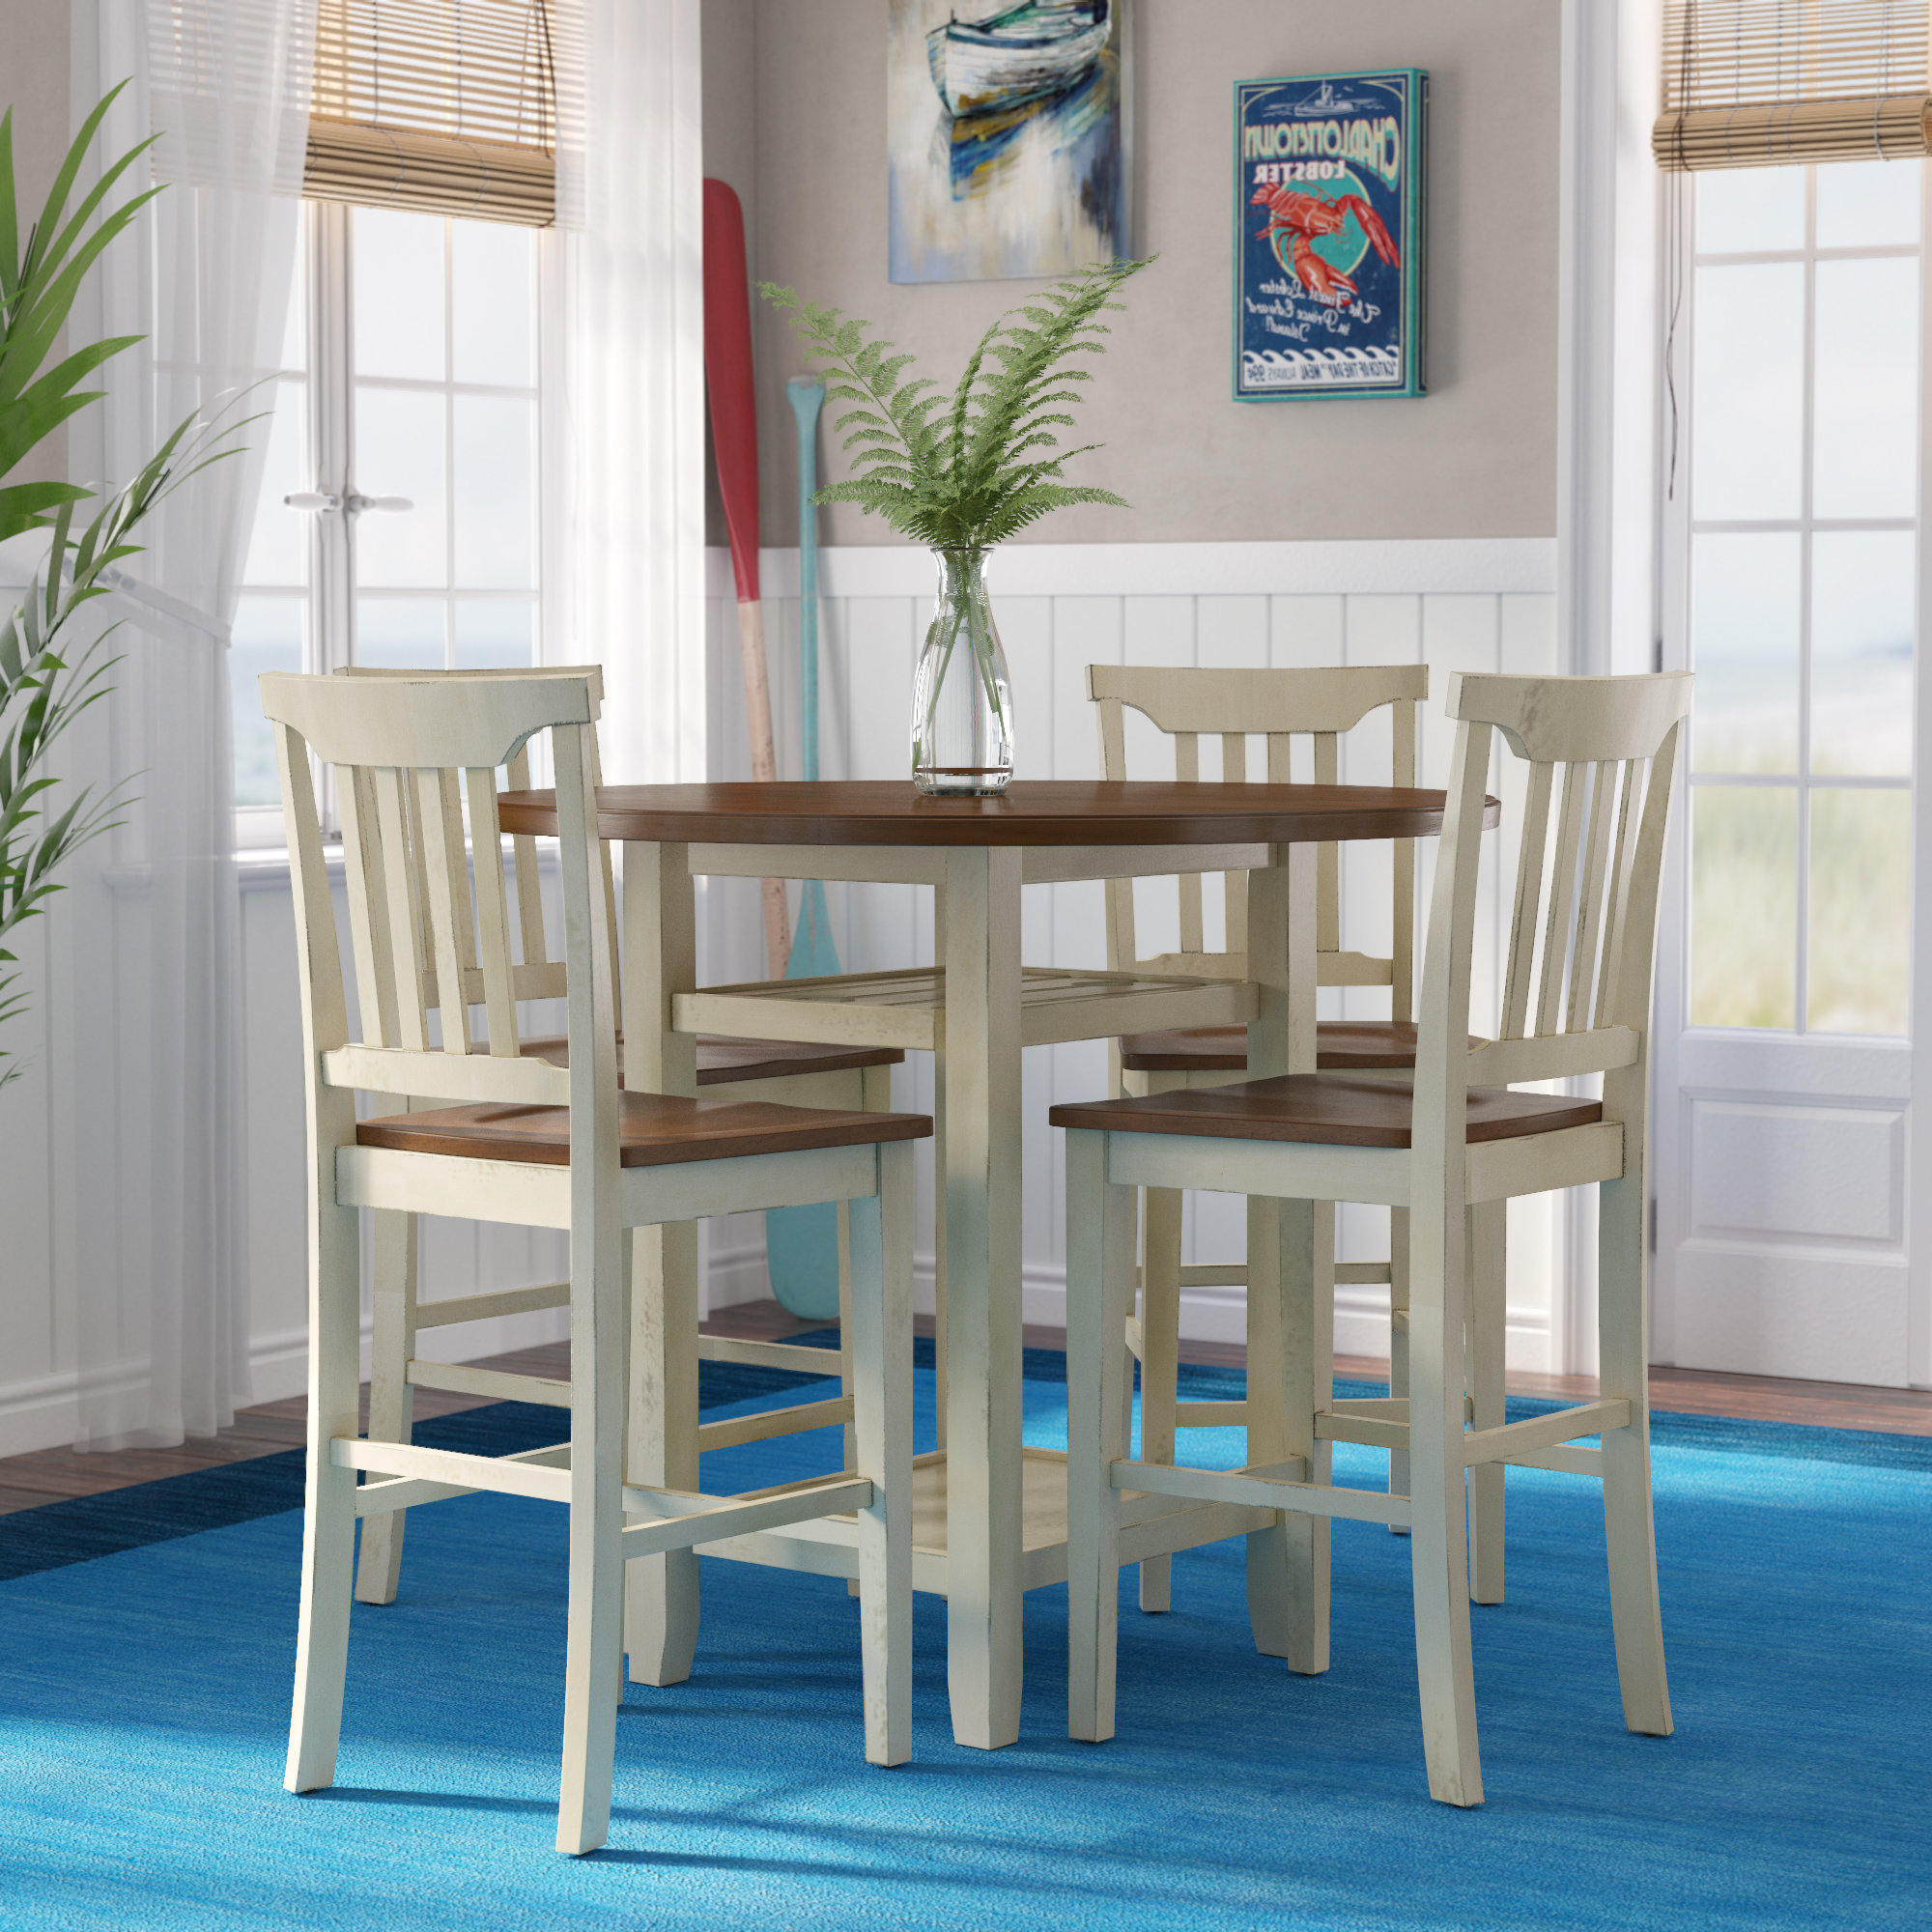 Famous 5 Piece Breakfast Nook Dining Sets Pertaining To Eastep 5 Piece Counter Height Breakfast Nook Dining Set (View 8 of 20)